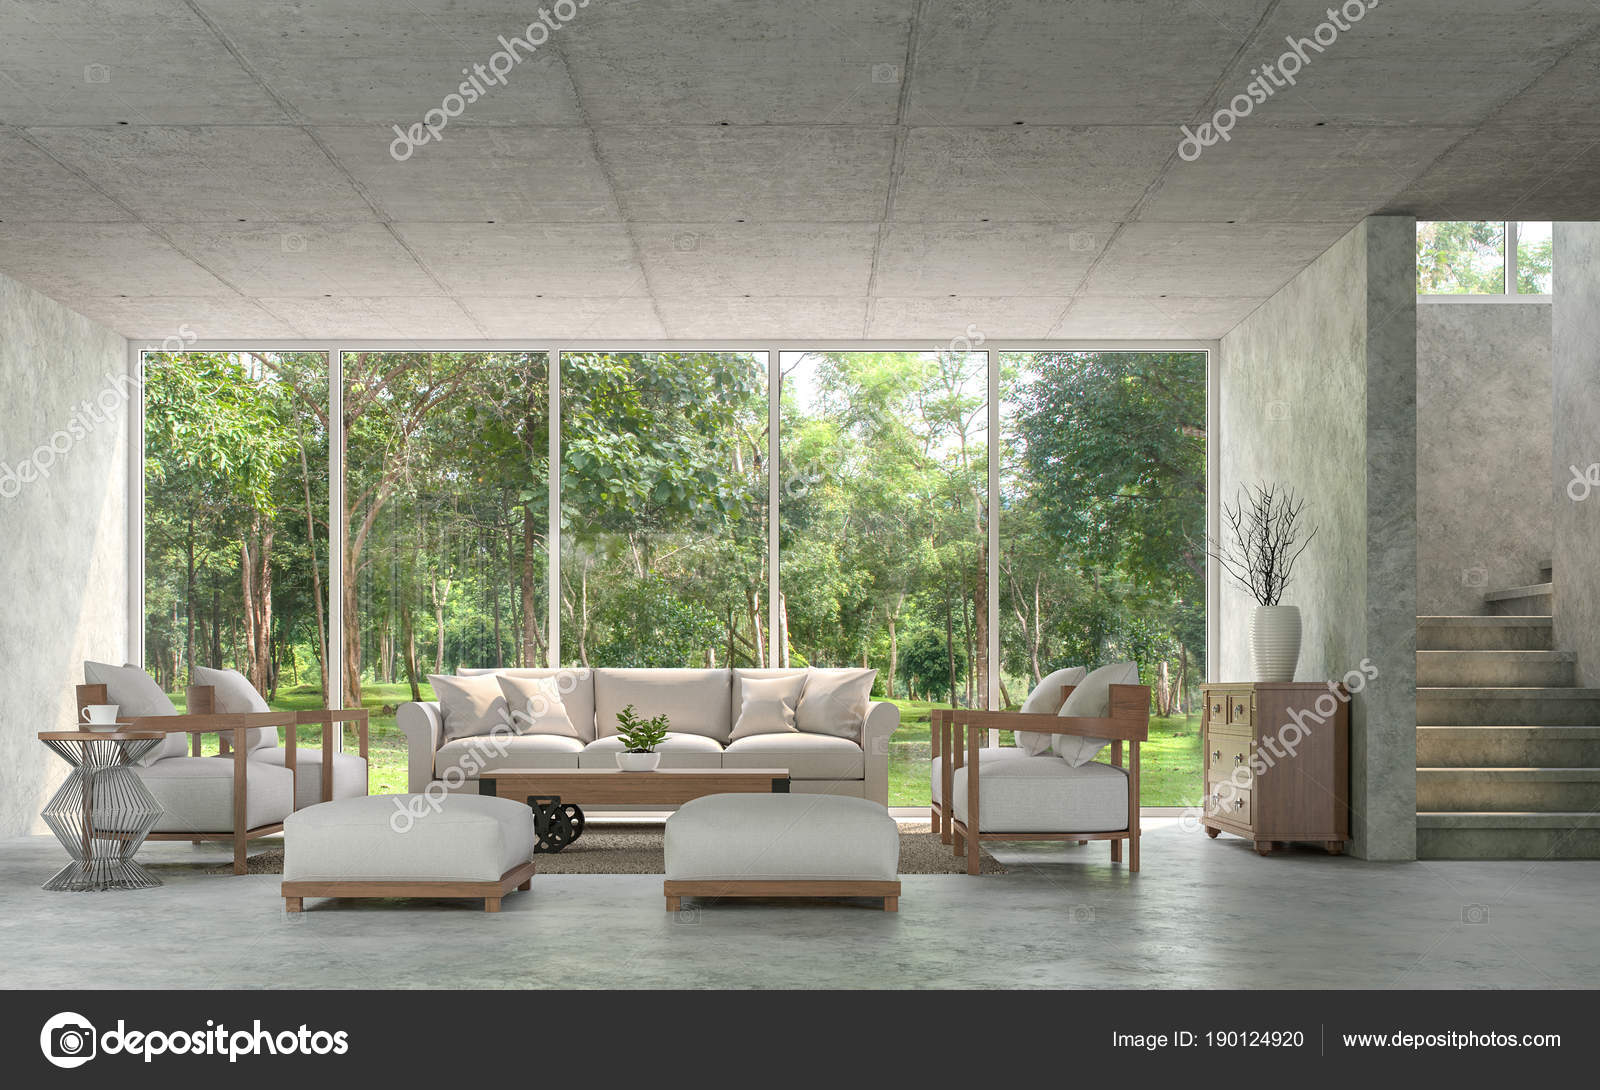 Modern Loft Style Living Room With Polished Concrete 3d Render.Furnished  With Fabric And Wood Furniture. There Are Window Overlooks To Nature.